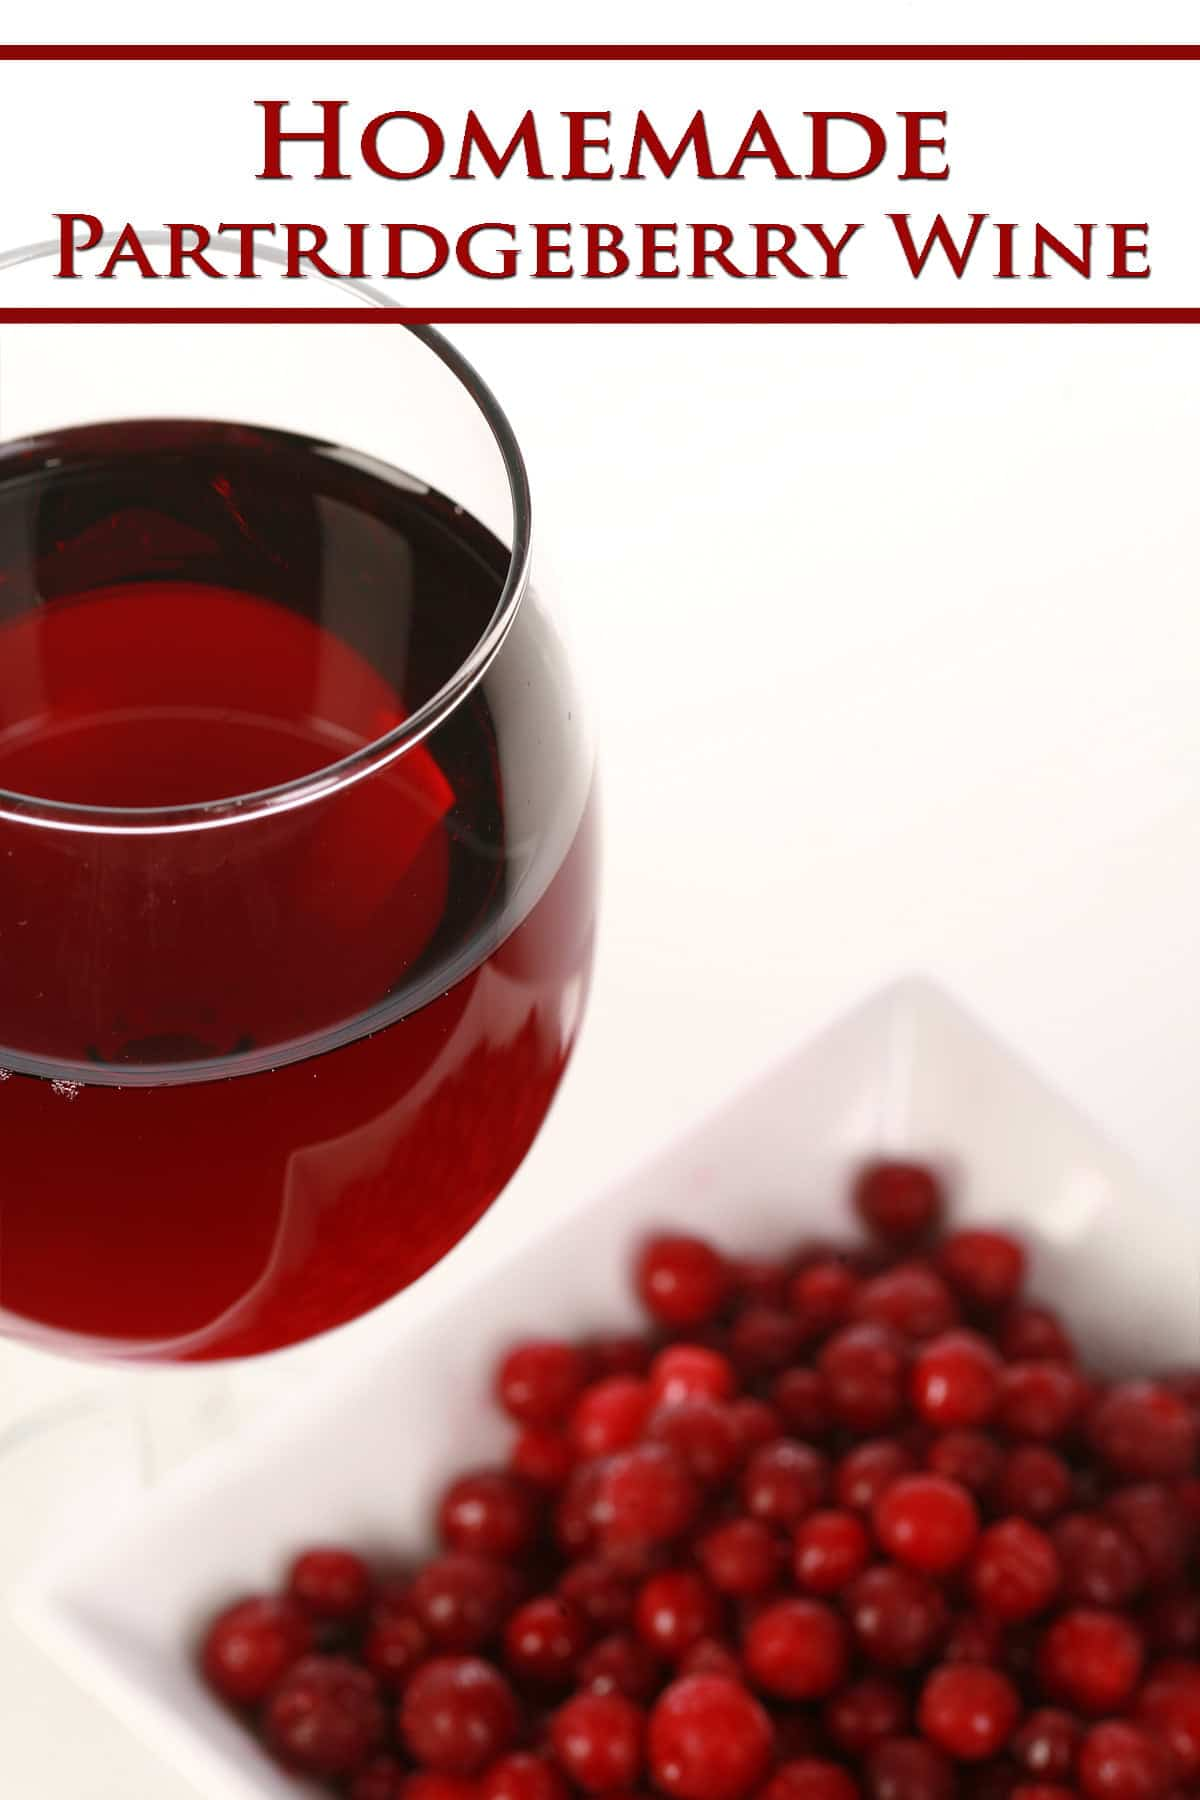 A glass of red wine - made from this partridgeberry wine recipe - is pictured next to a small bowl of partridgeberries.